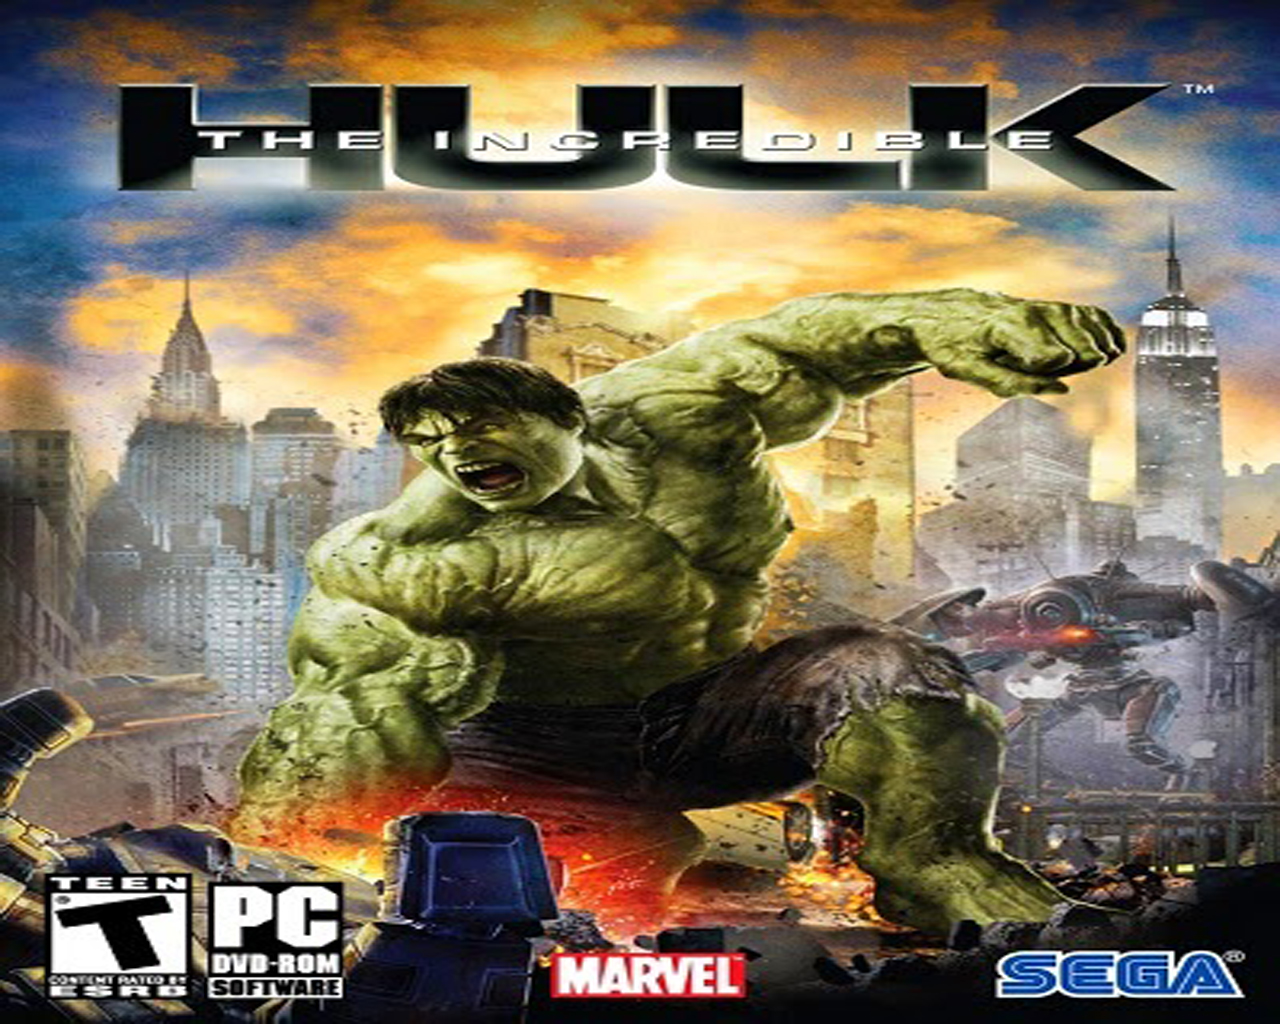 The incredible hulk pc game free download full.